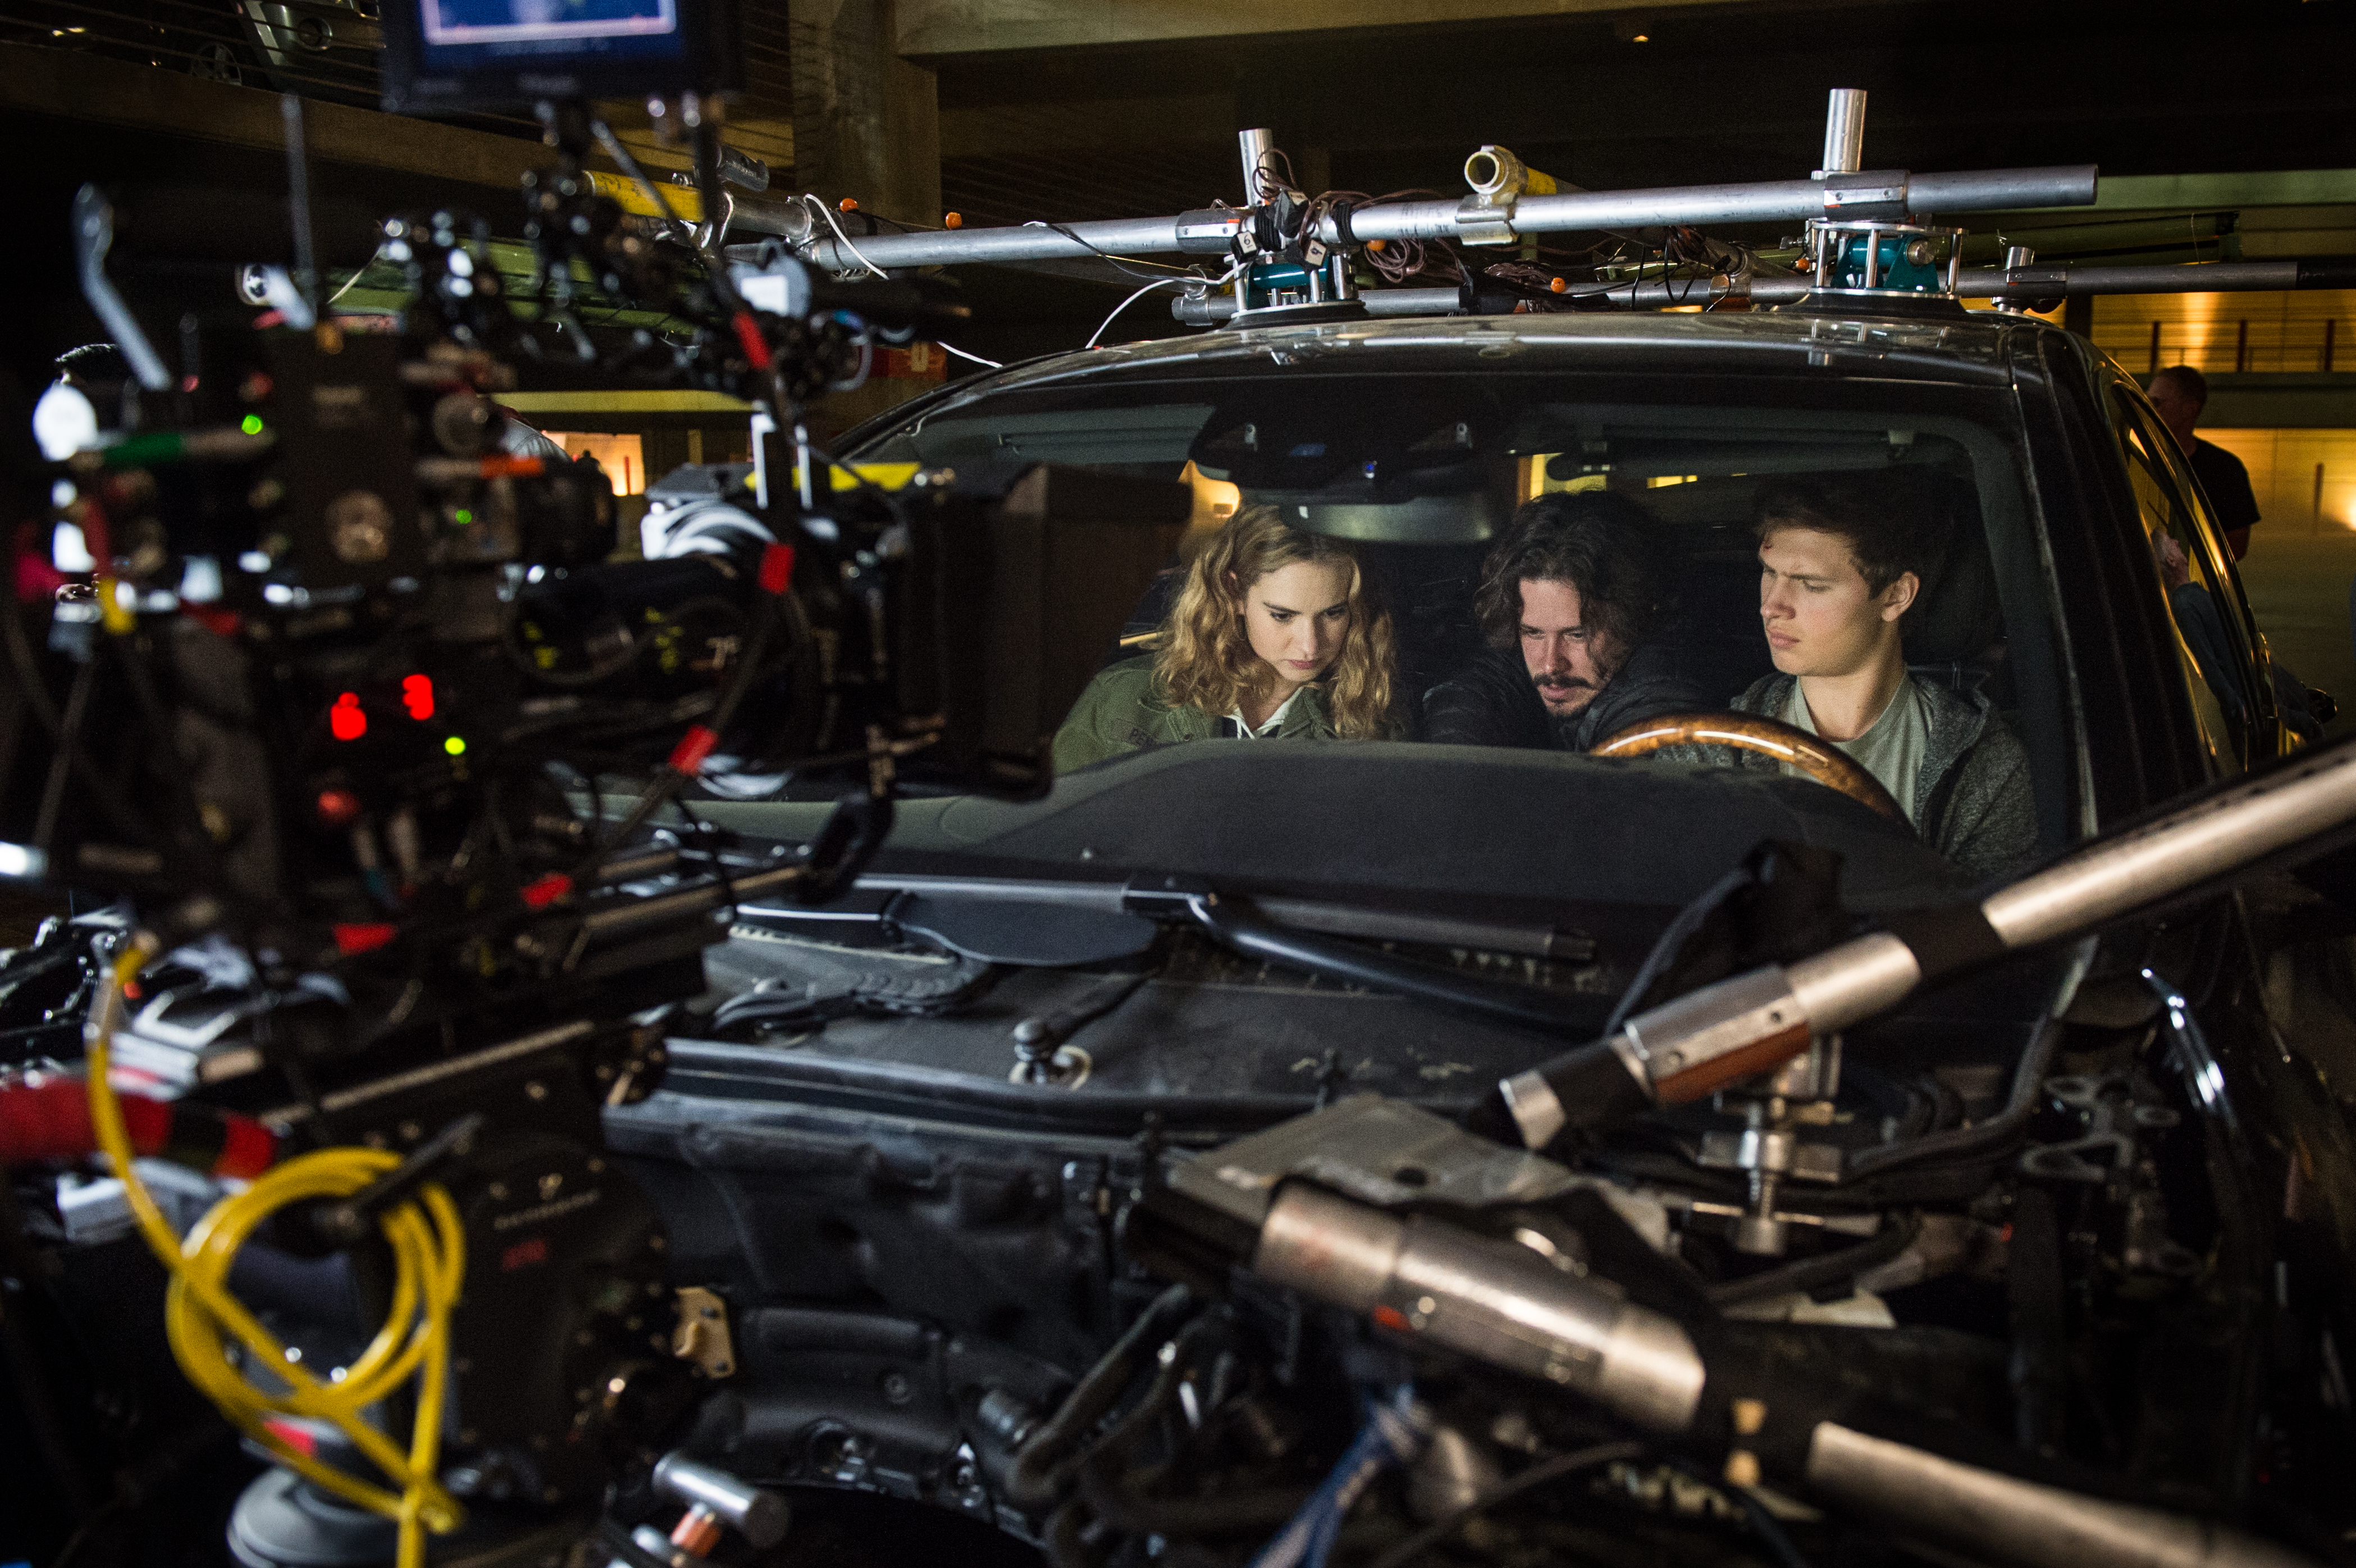 how baby driver pulled off its car stunts according to edgar rh inverse com